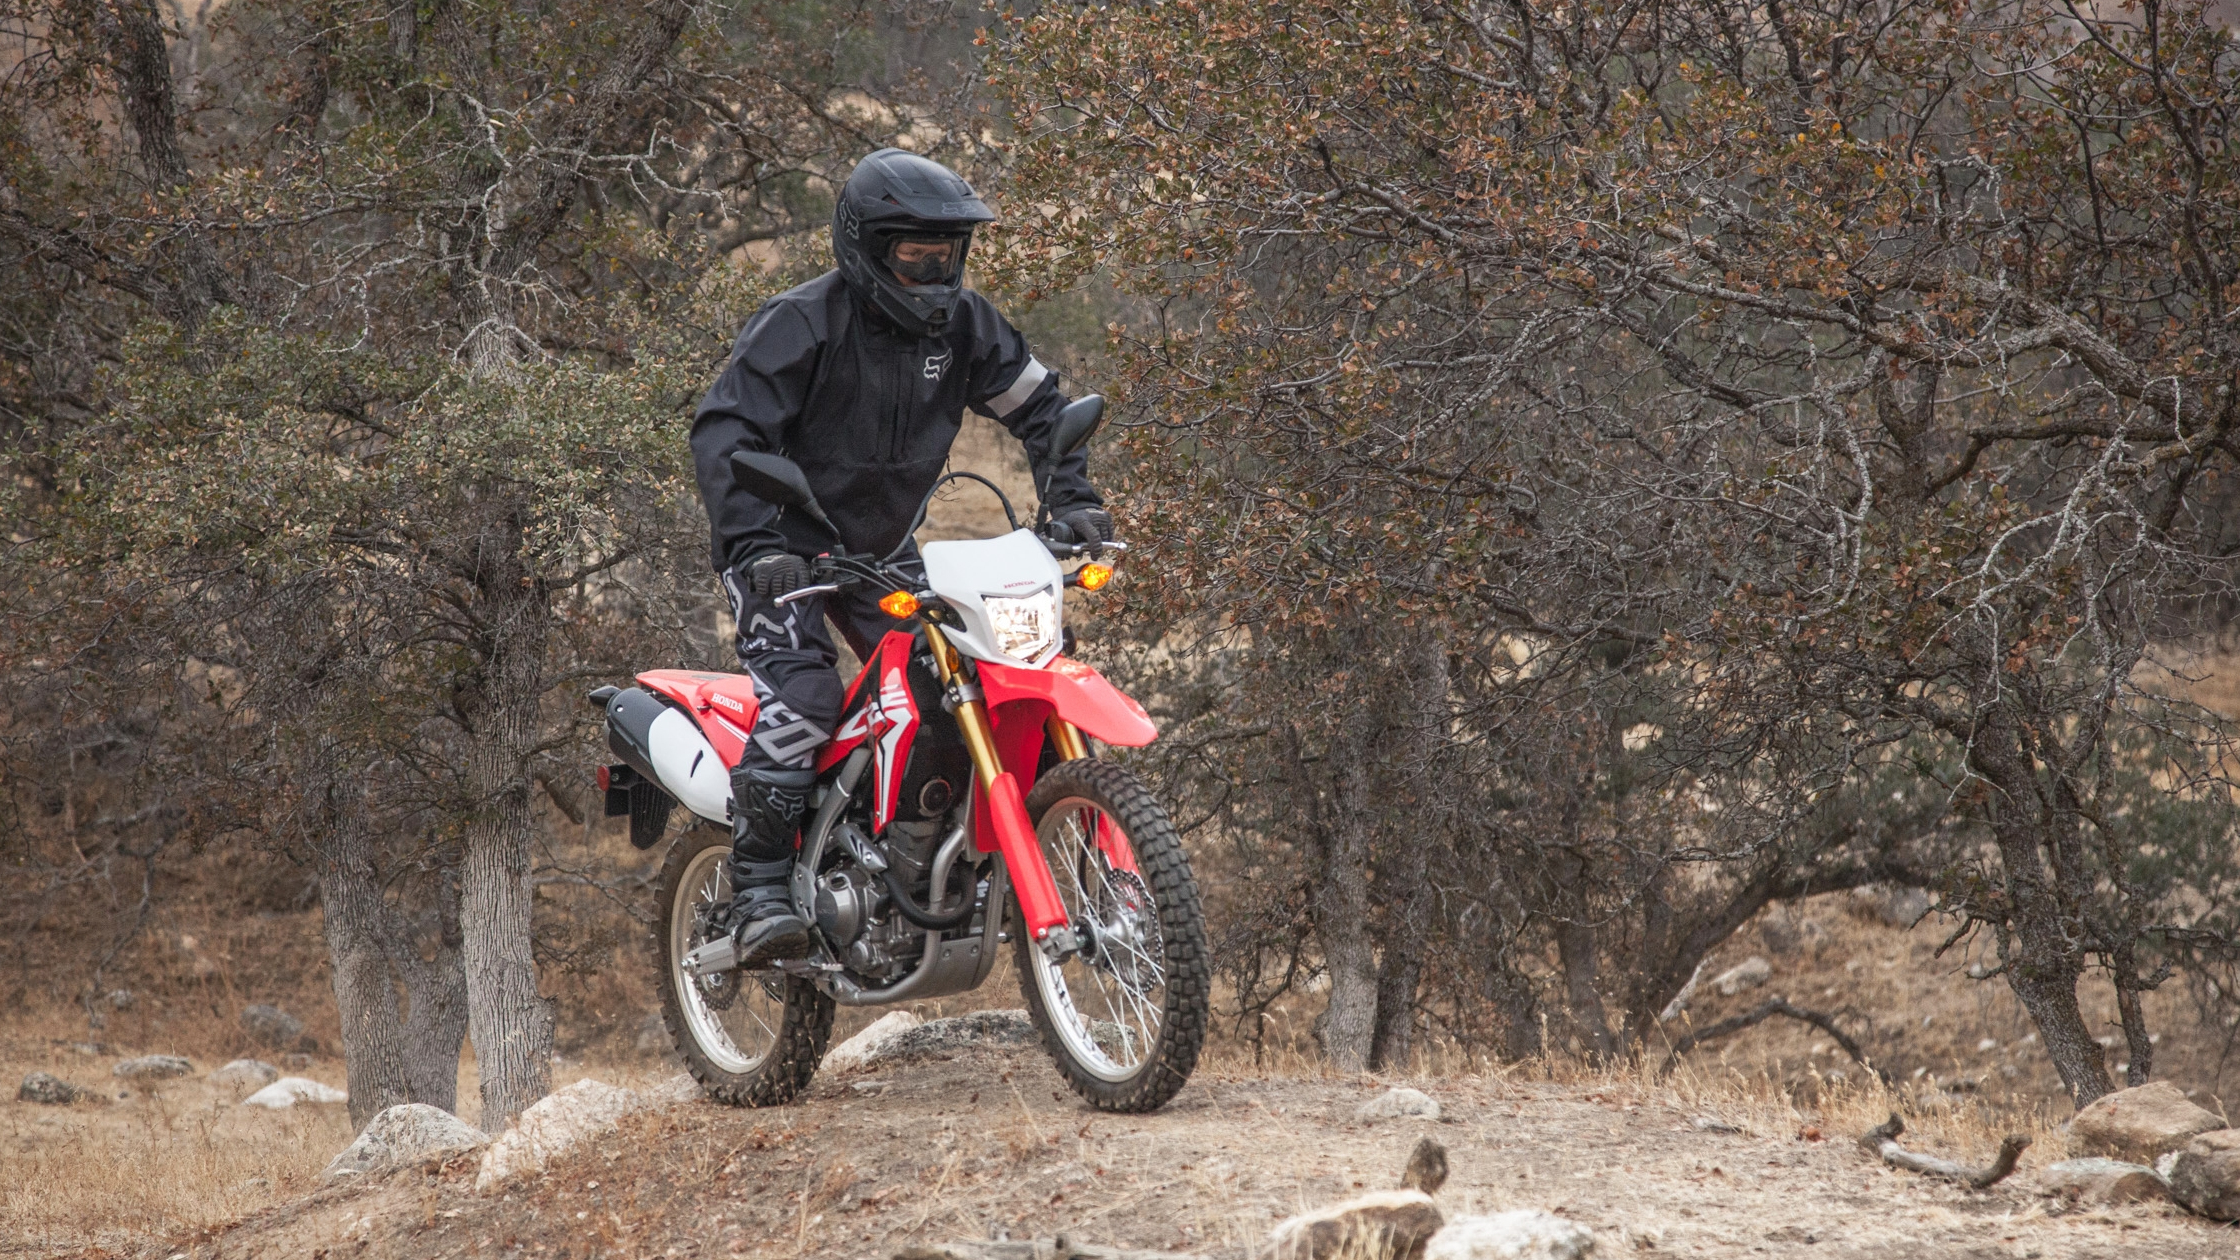 2017 Honda CRF250L / CRF250L Rally Pictures, Photos